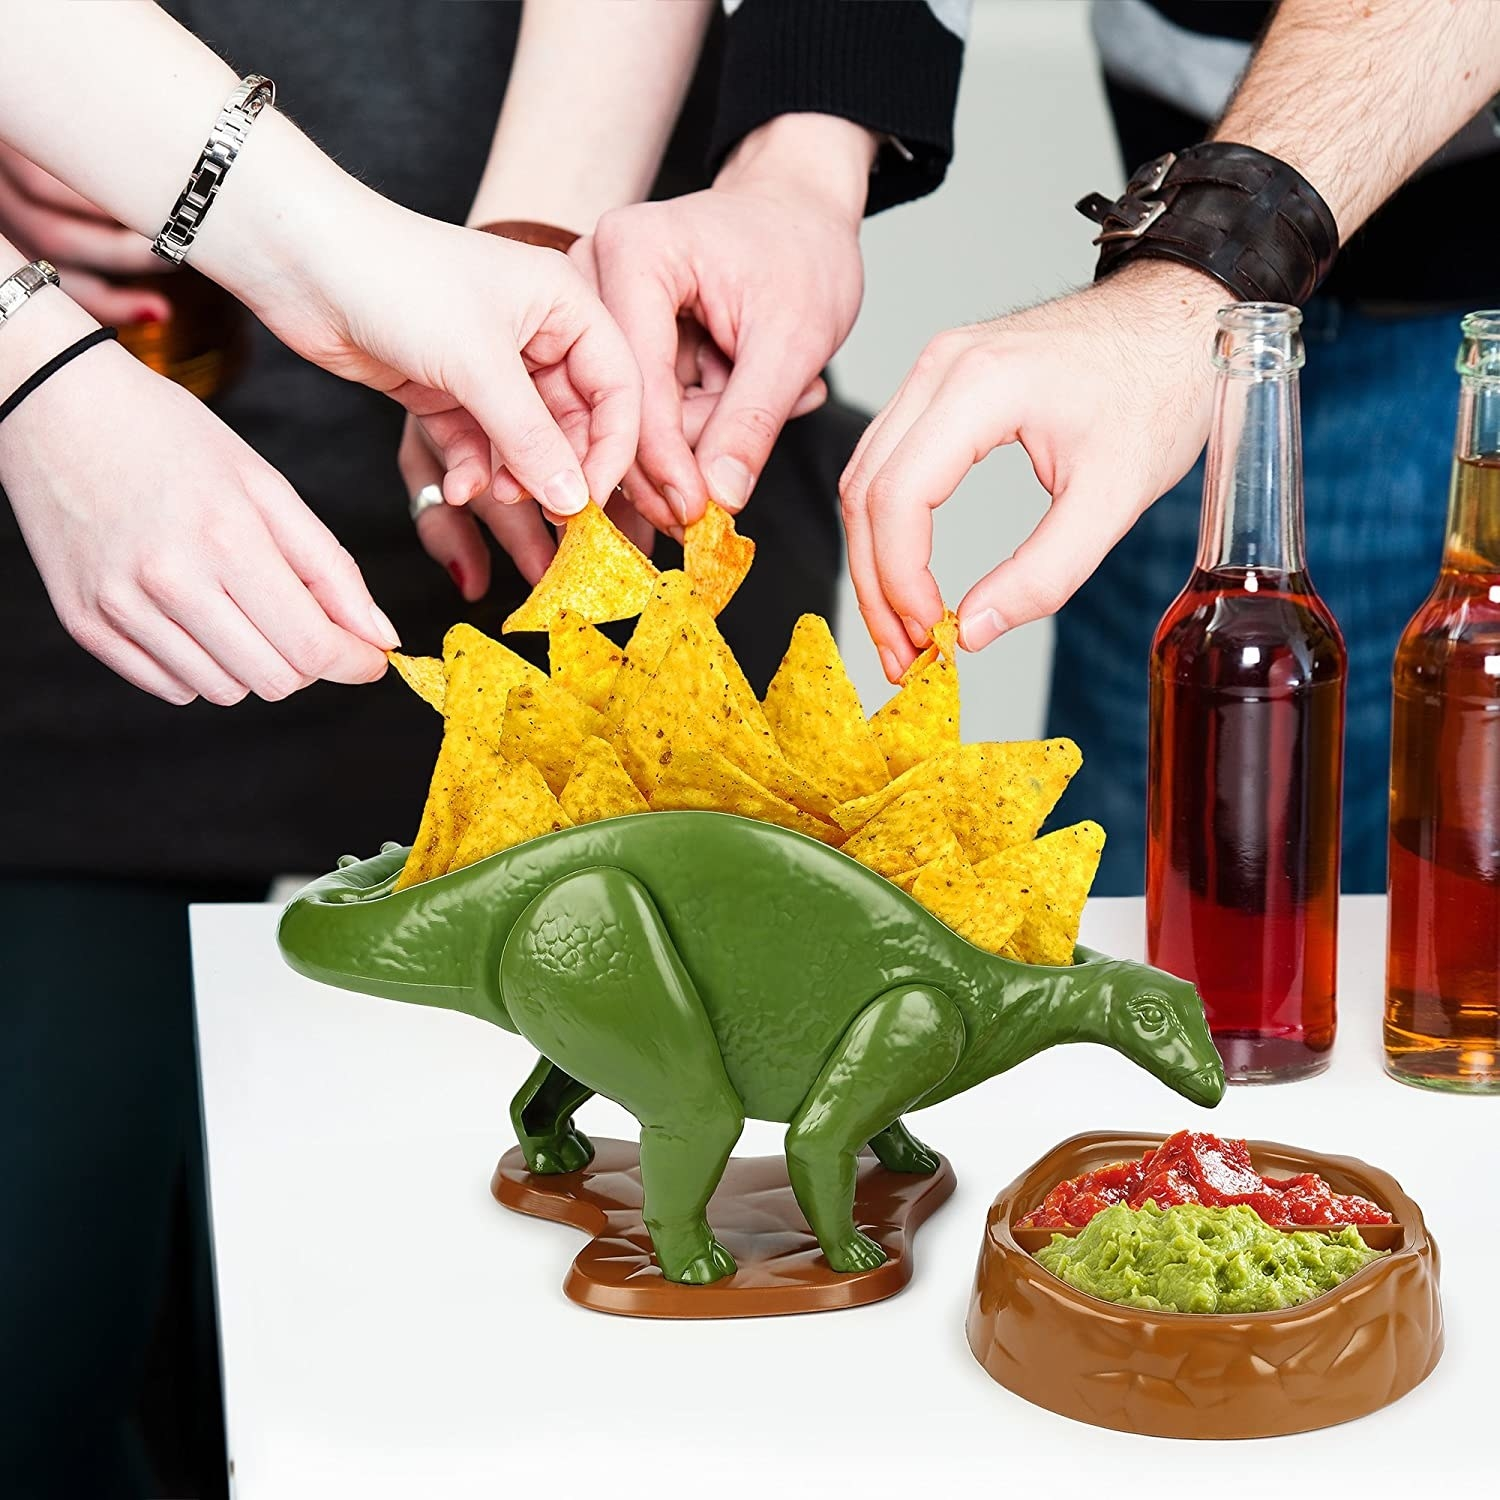 A stegosaurus with chips in its back and a divided bowl with salsa and guacamole